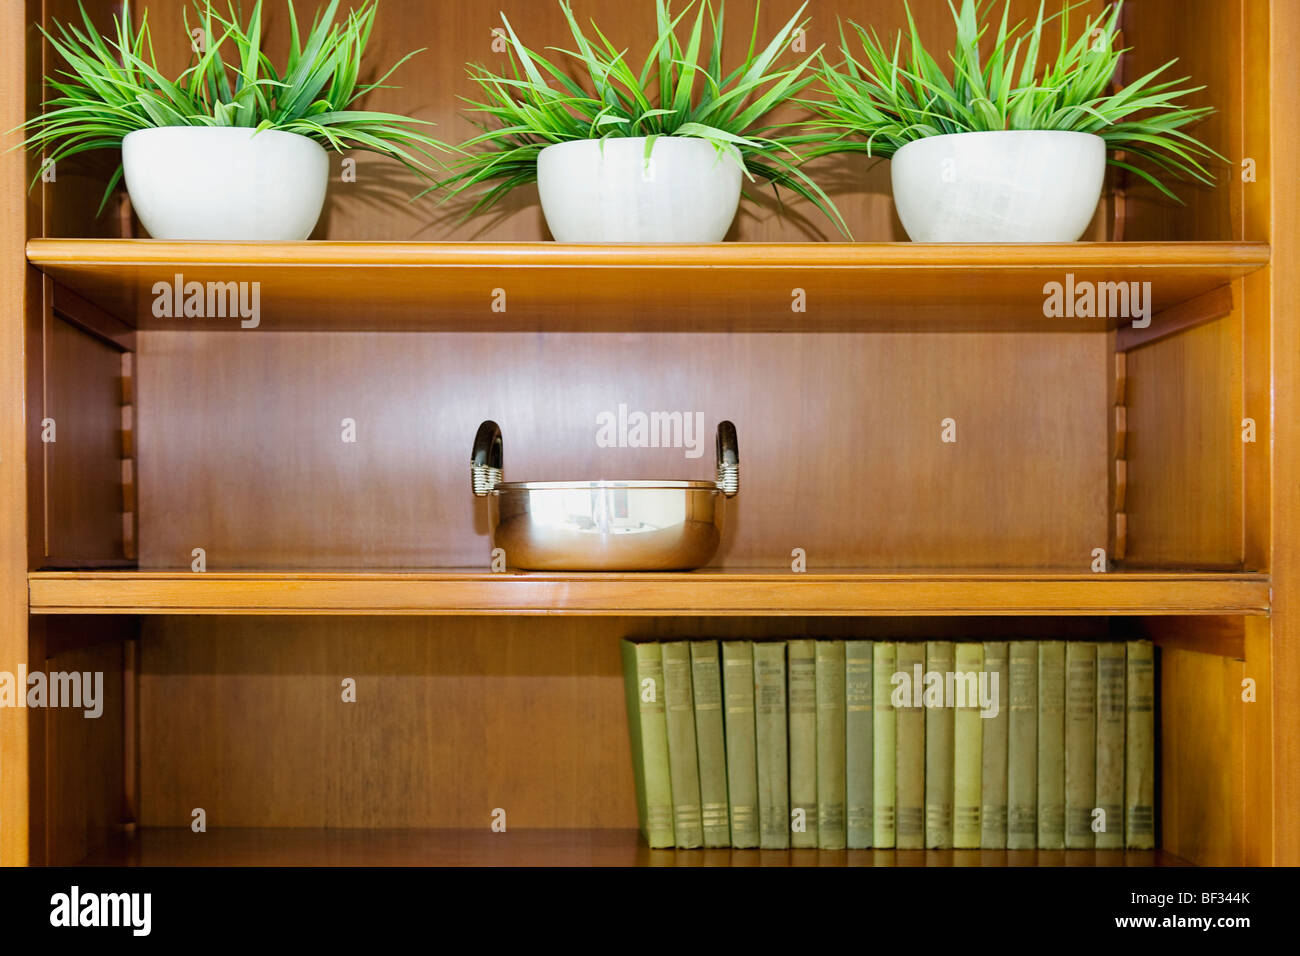 Potted plant on a shelf - Stock Image